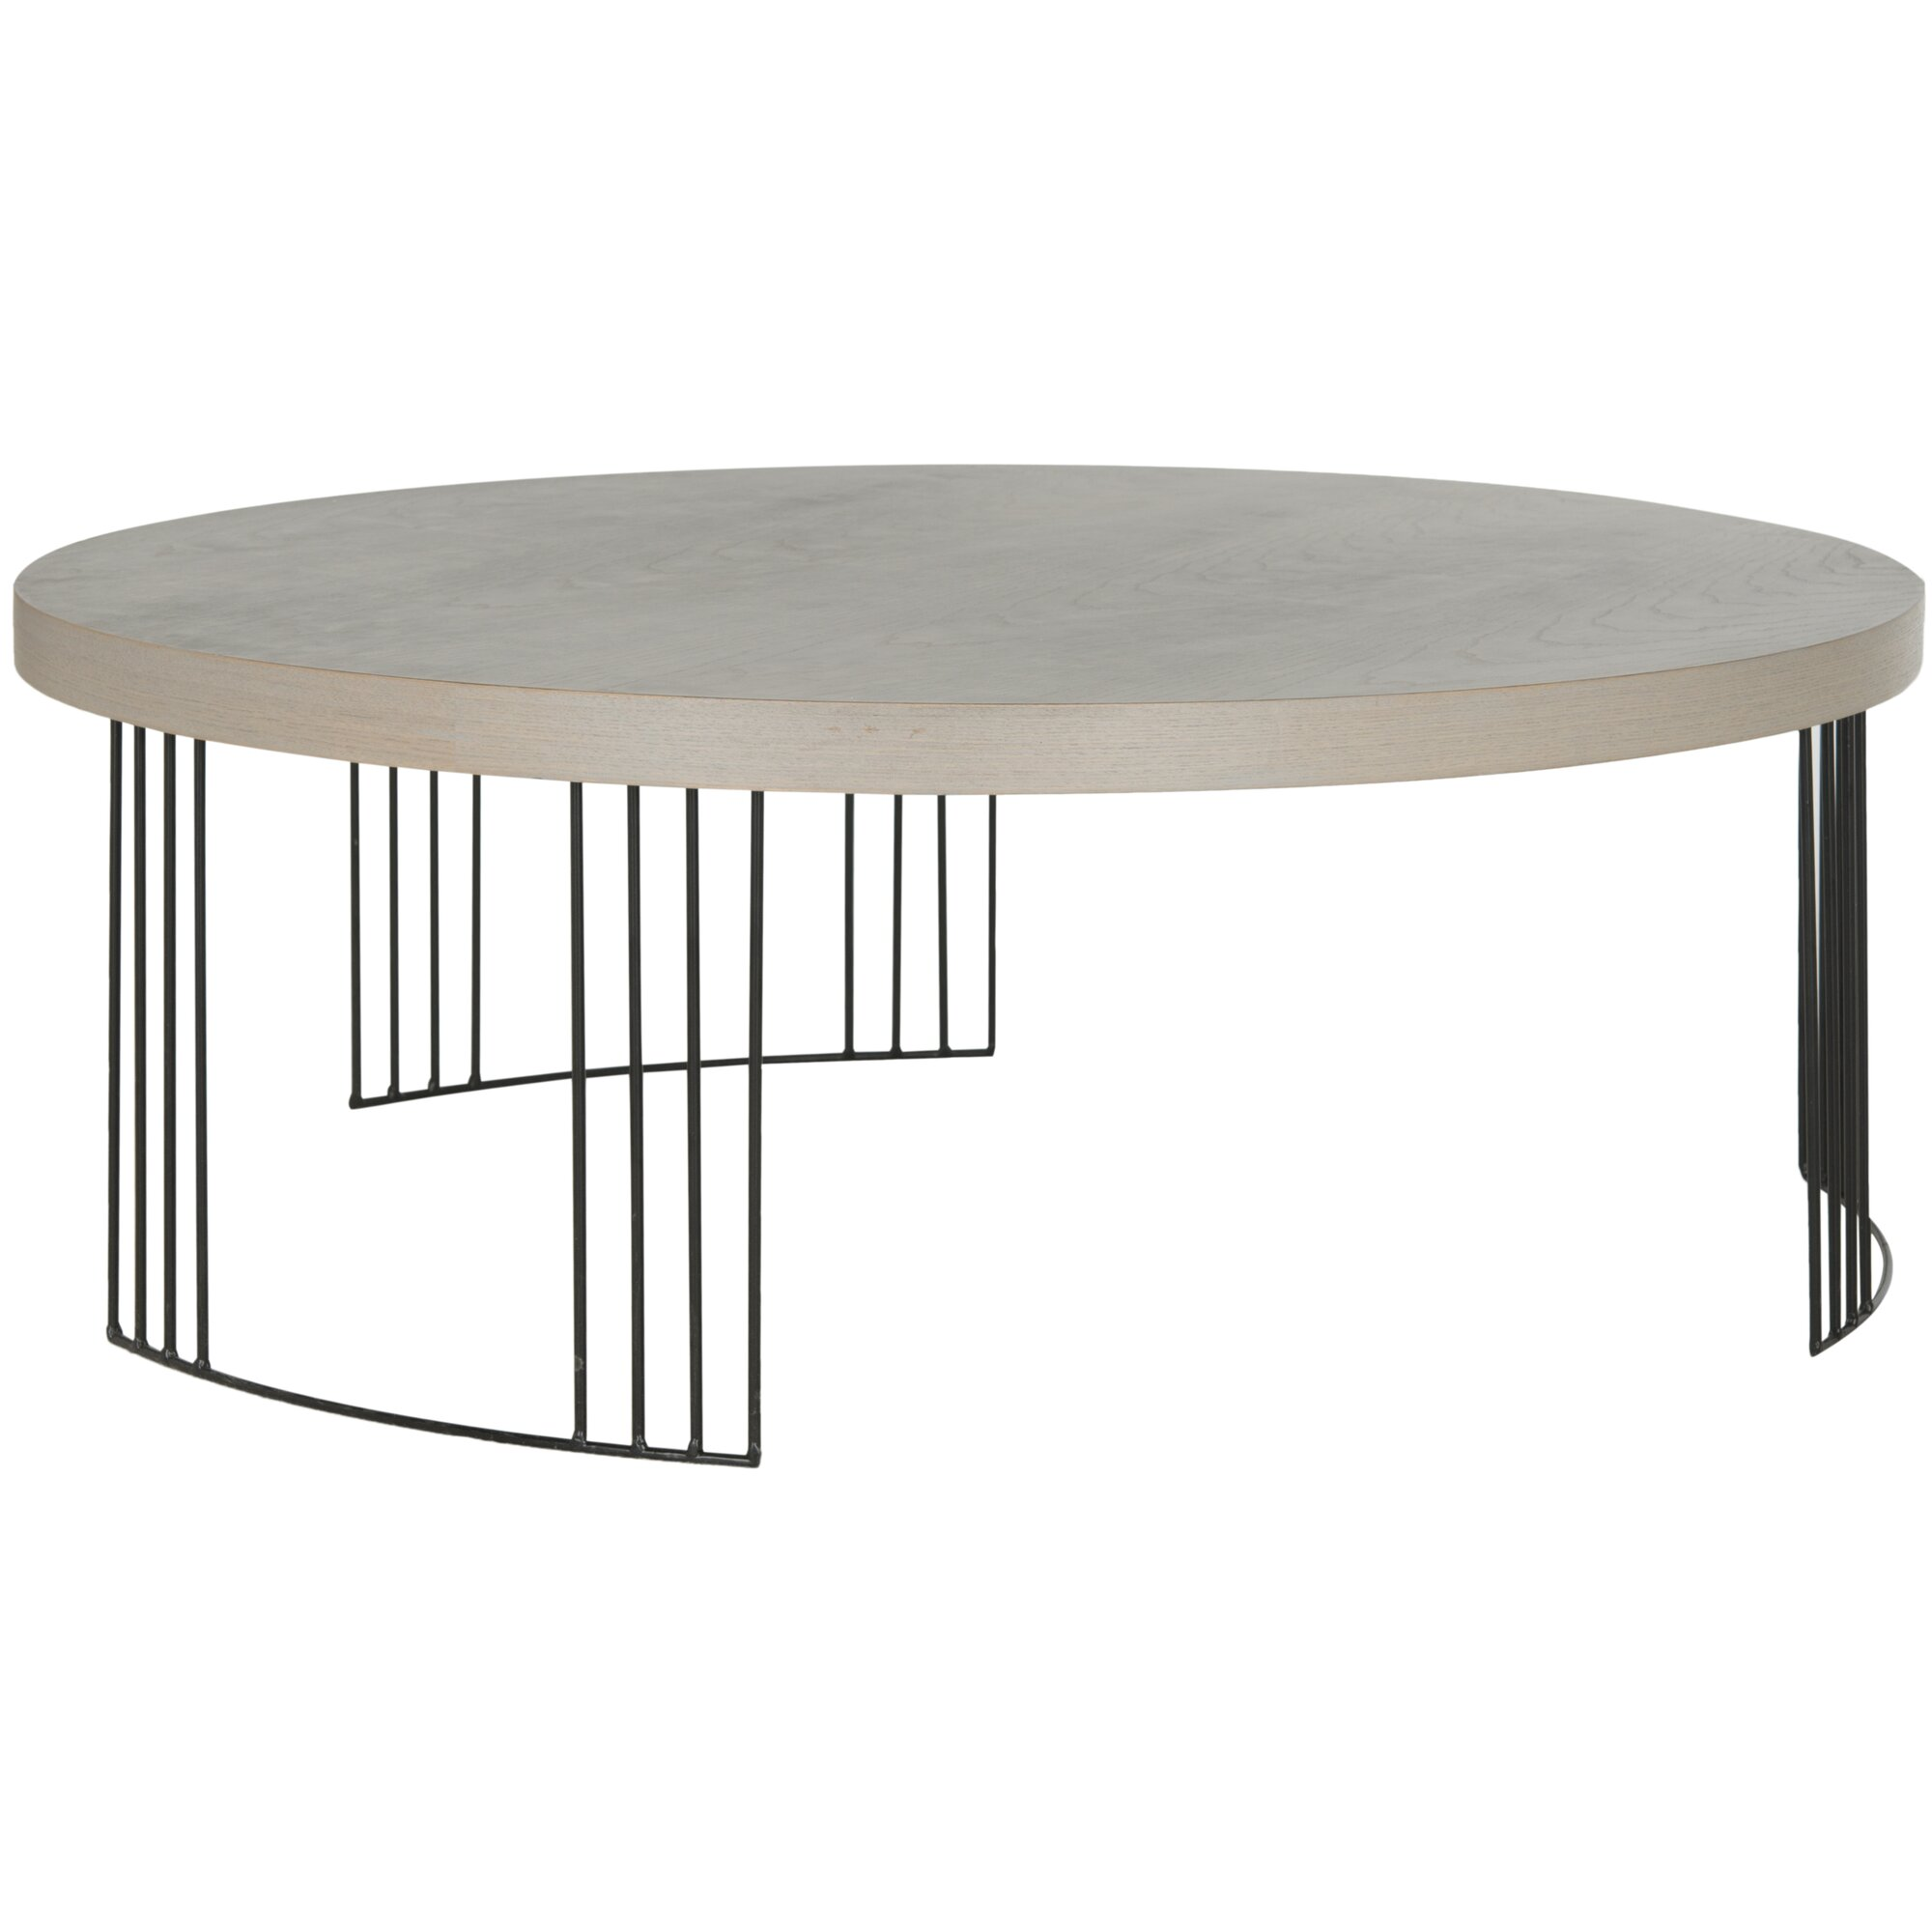 Odd shaped coffee tables allegro cocktail table platinum with odd cheap ambrosios coffee table with odd shaped coffee tables geotapseo Choice Image